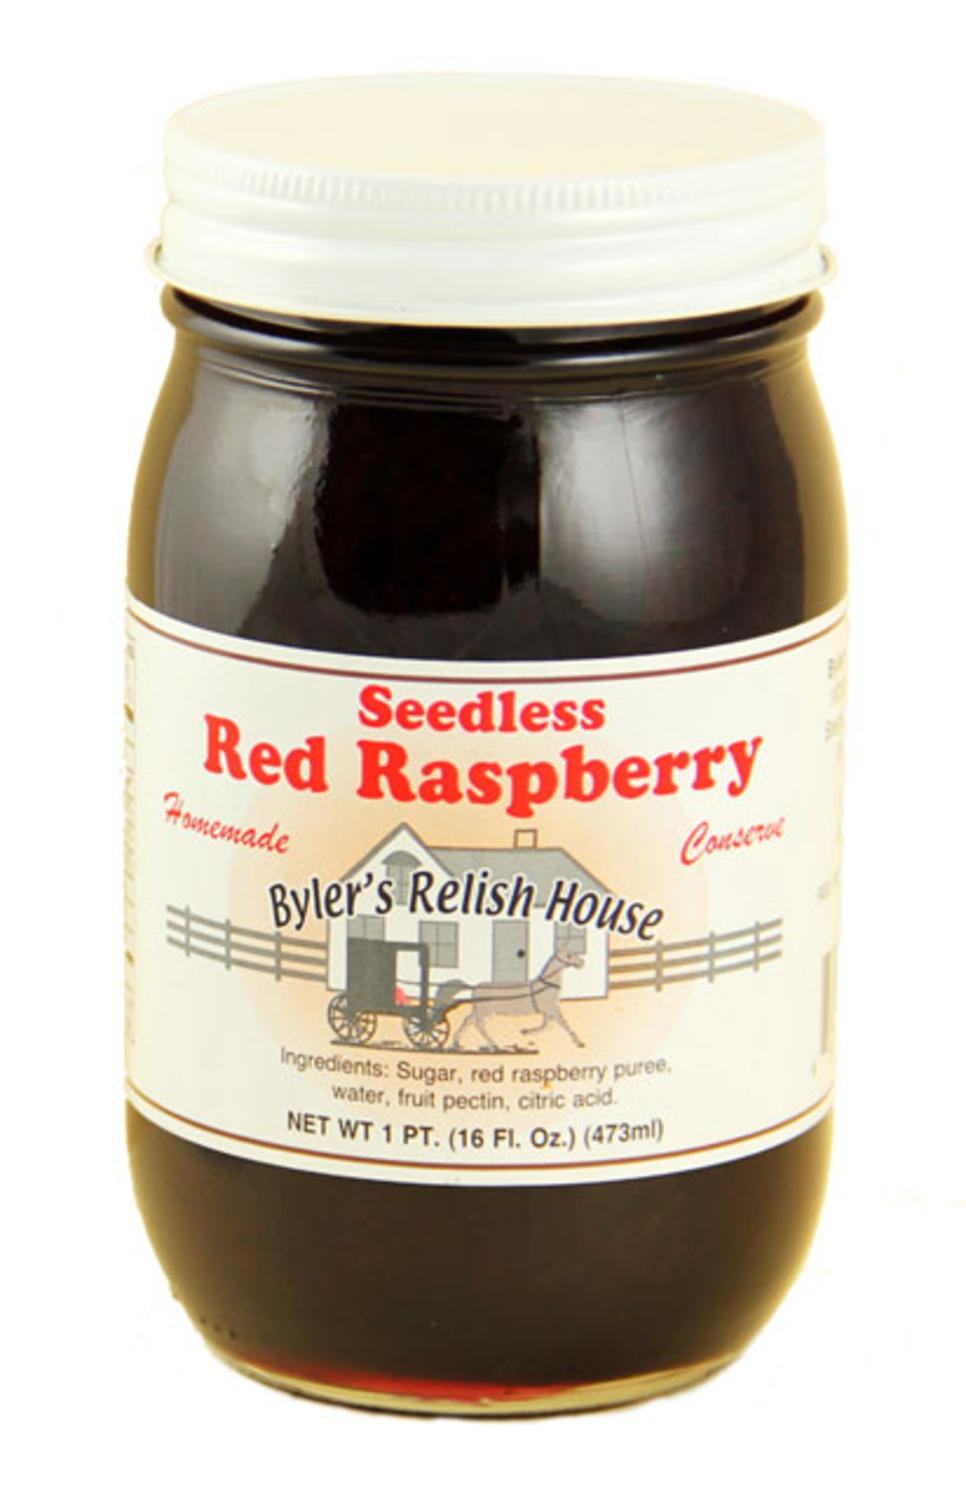 Byler's Relish House Homemade Amish Country Seedless Red Raspberry Jam 16 oz. by Byler's Relish House